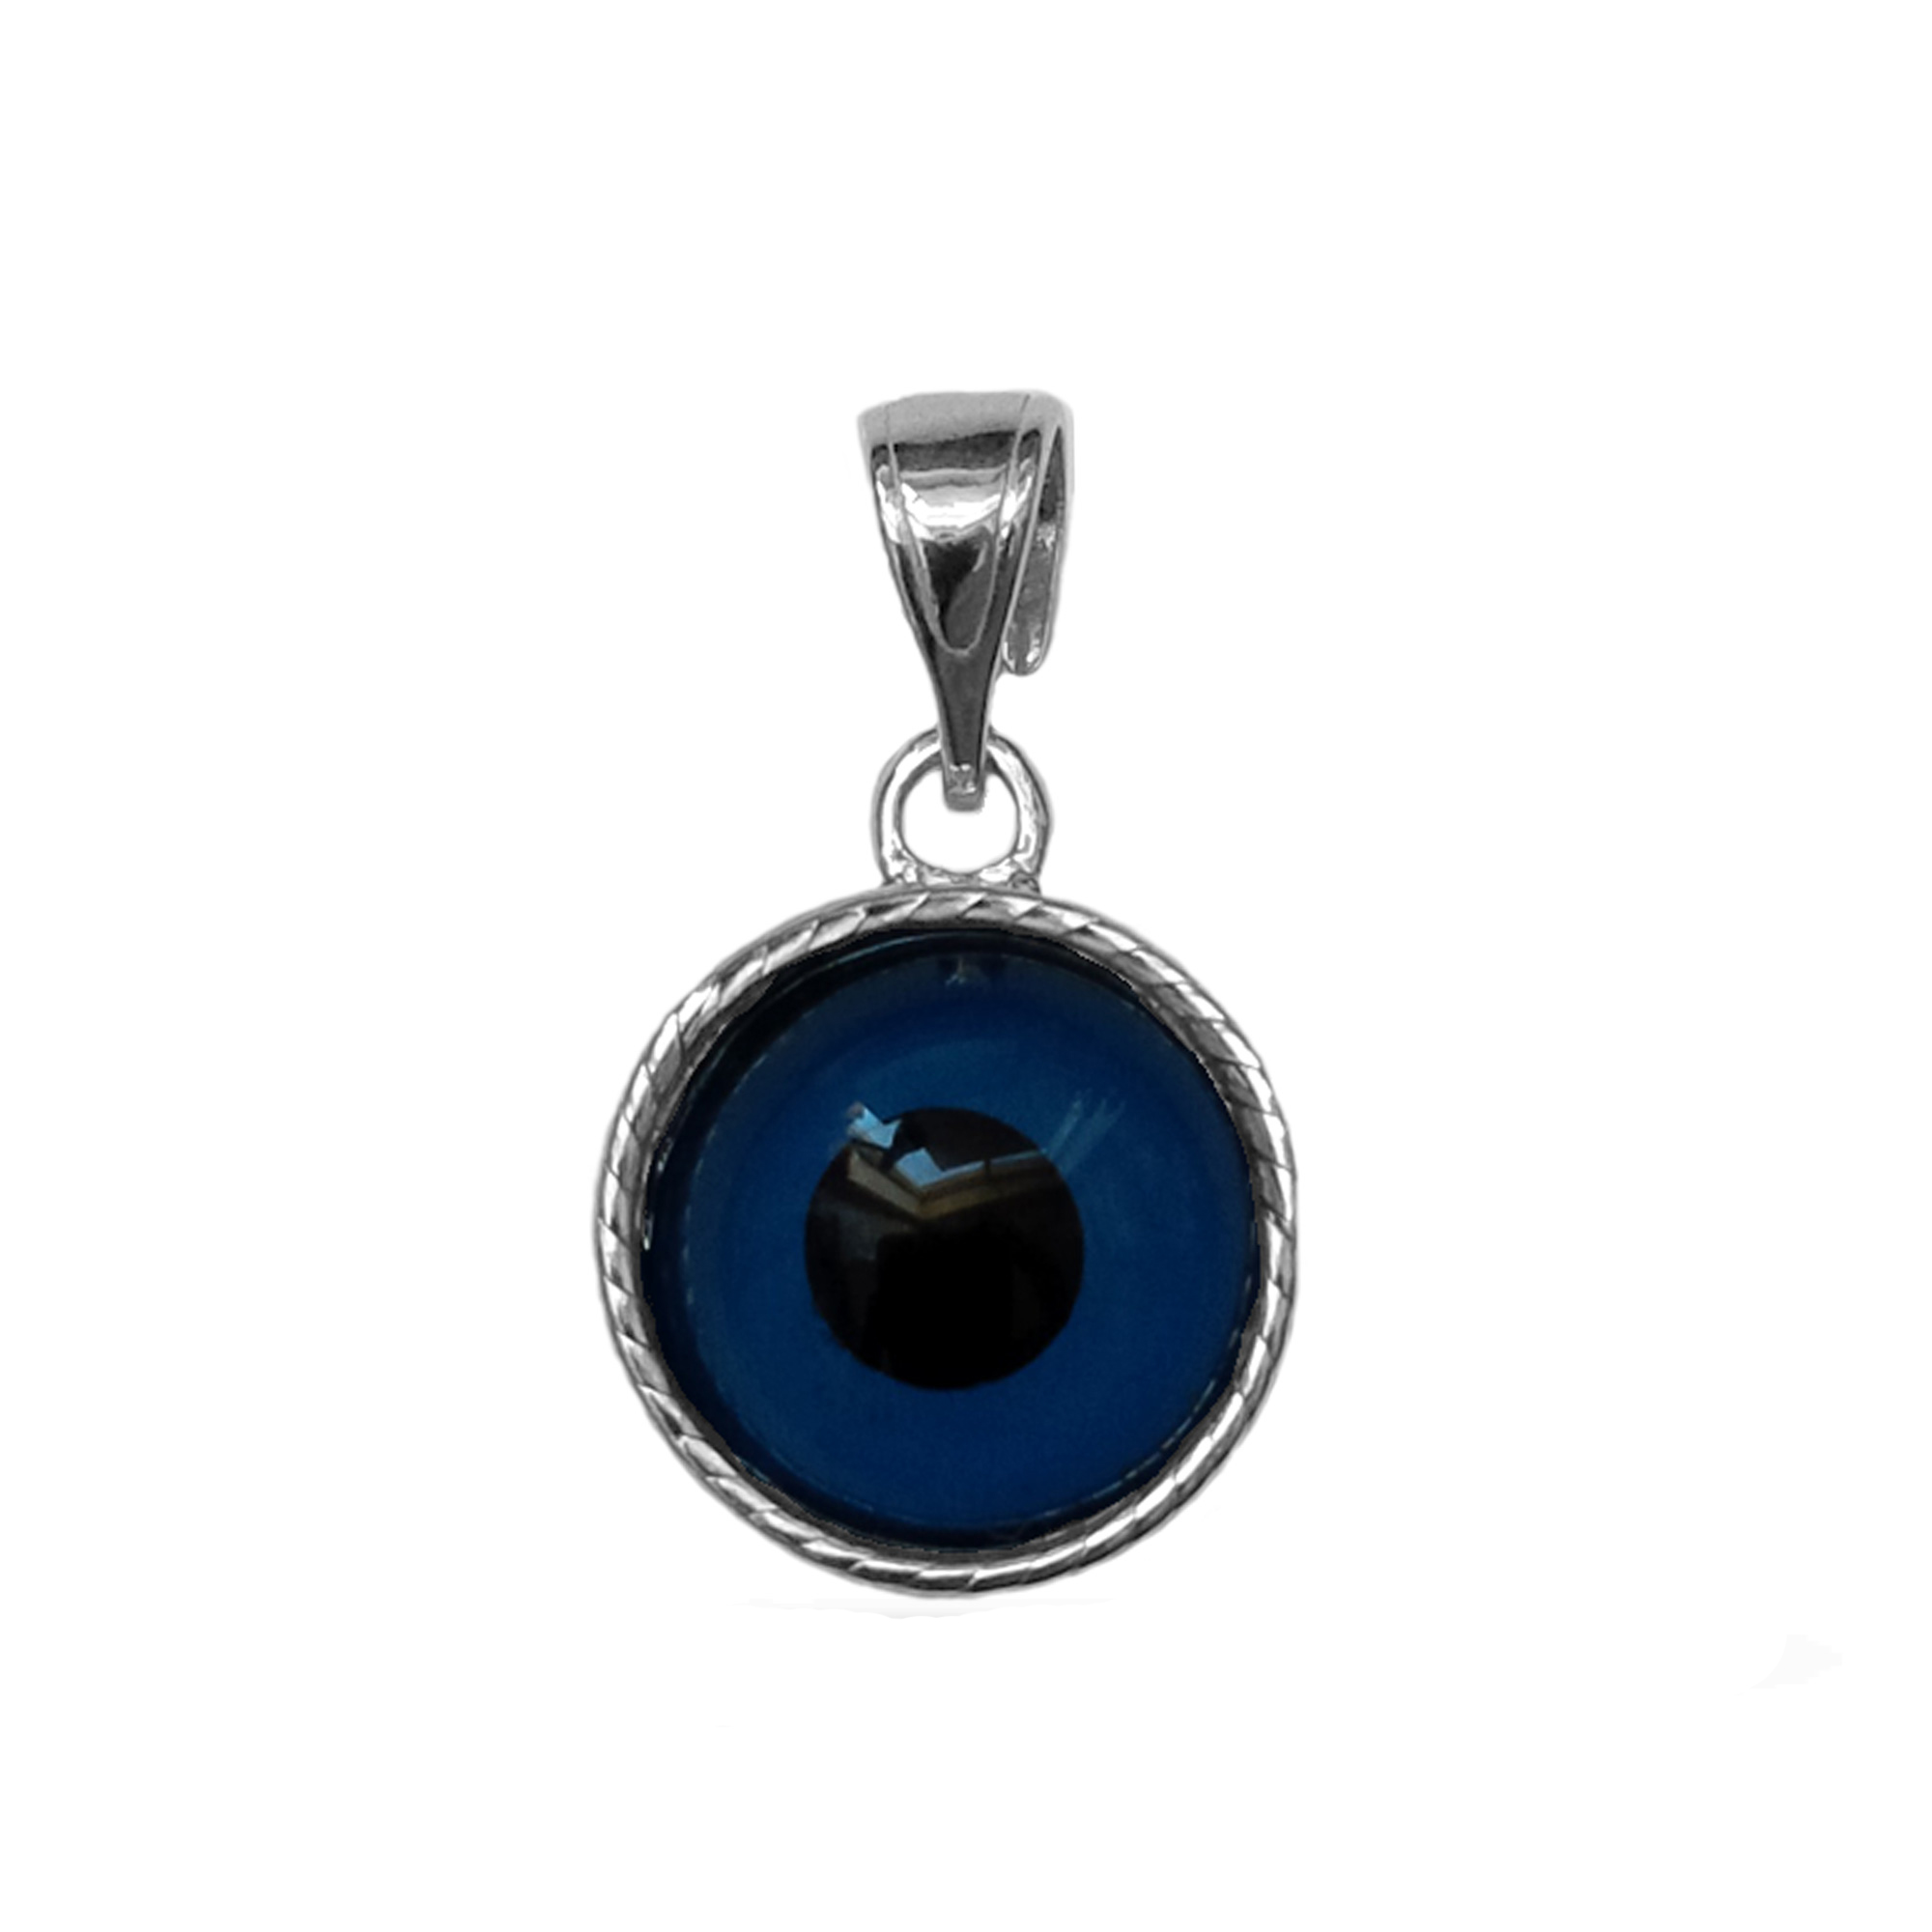 Sterling Silver Greek Meandros Evil Eye Charm Inspired from the of Greek ancient jewelry era, this sterling silver charm features the Greek Key motif, also known as the Meander or eternity symbol, bordering a beautiful double sided glass Evil Eye. Measuring at 12mm diameter, this Greek evil eye is rhodium plated for better tarnish resistance.